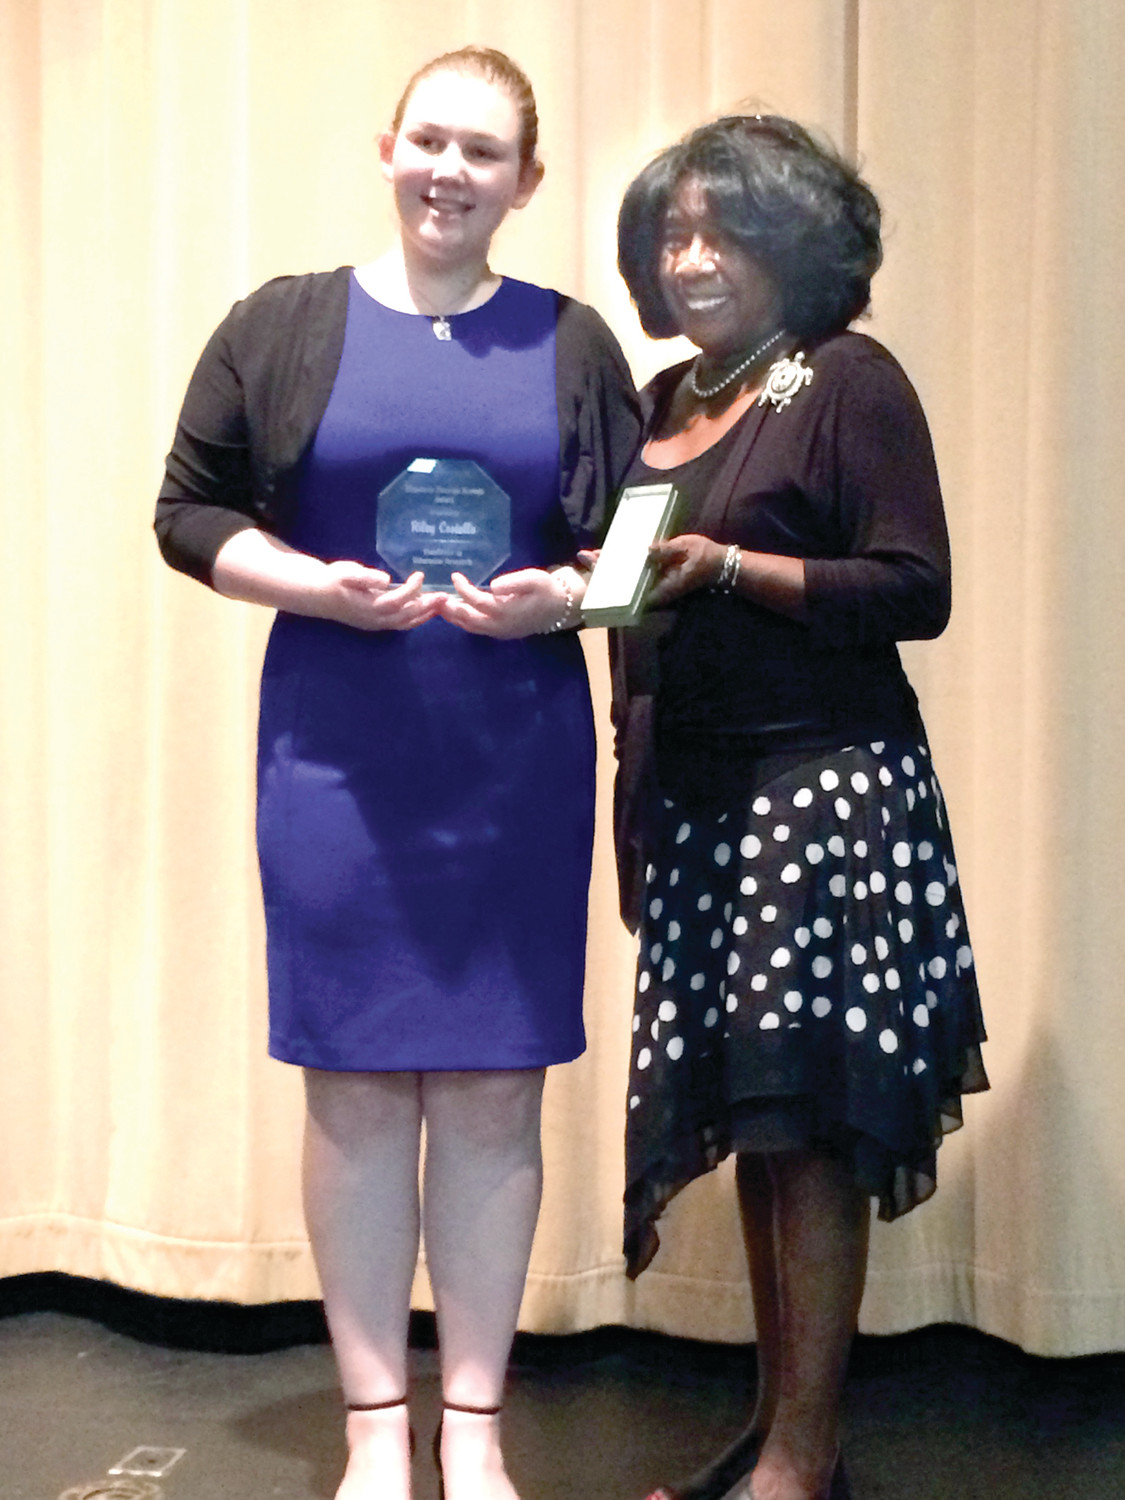 SOUTHERN HOSPITALITY: Riley Costello stands with Dee Dee Wright, goddaughter of Elizabeth Duncan Koontz, at the Salisbury Human Relations Council annual Elizabeth Duncan Koontz Humanitarian Awards Banquet, held on Feb. 22 in Salisbury, N.C.